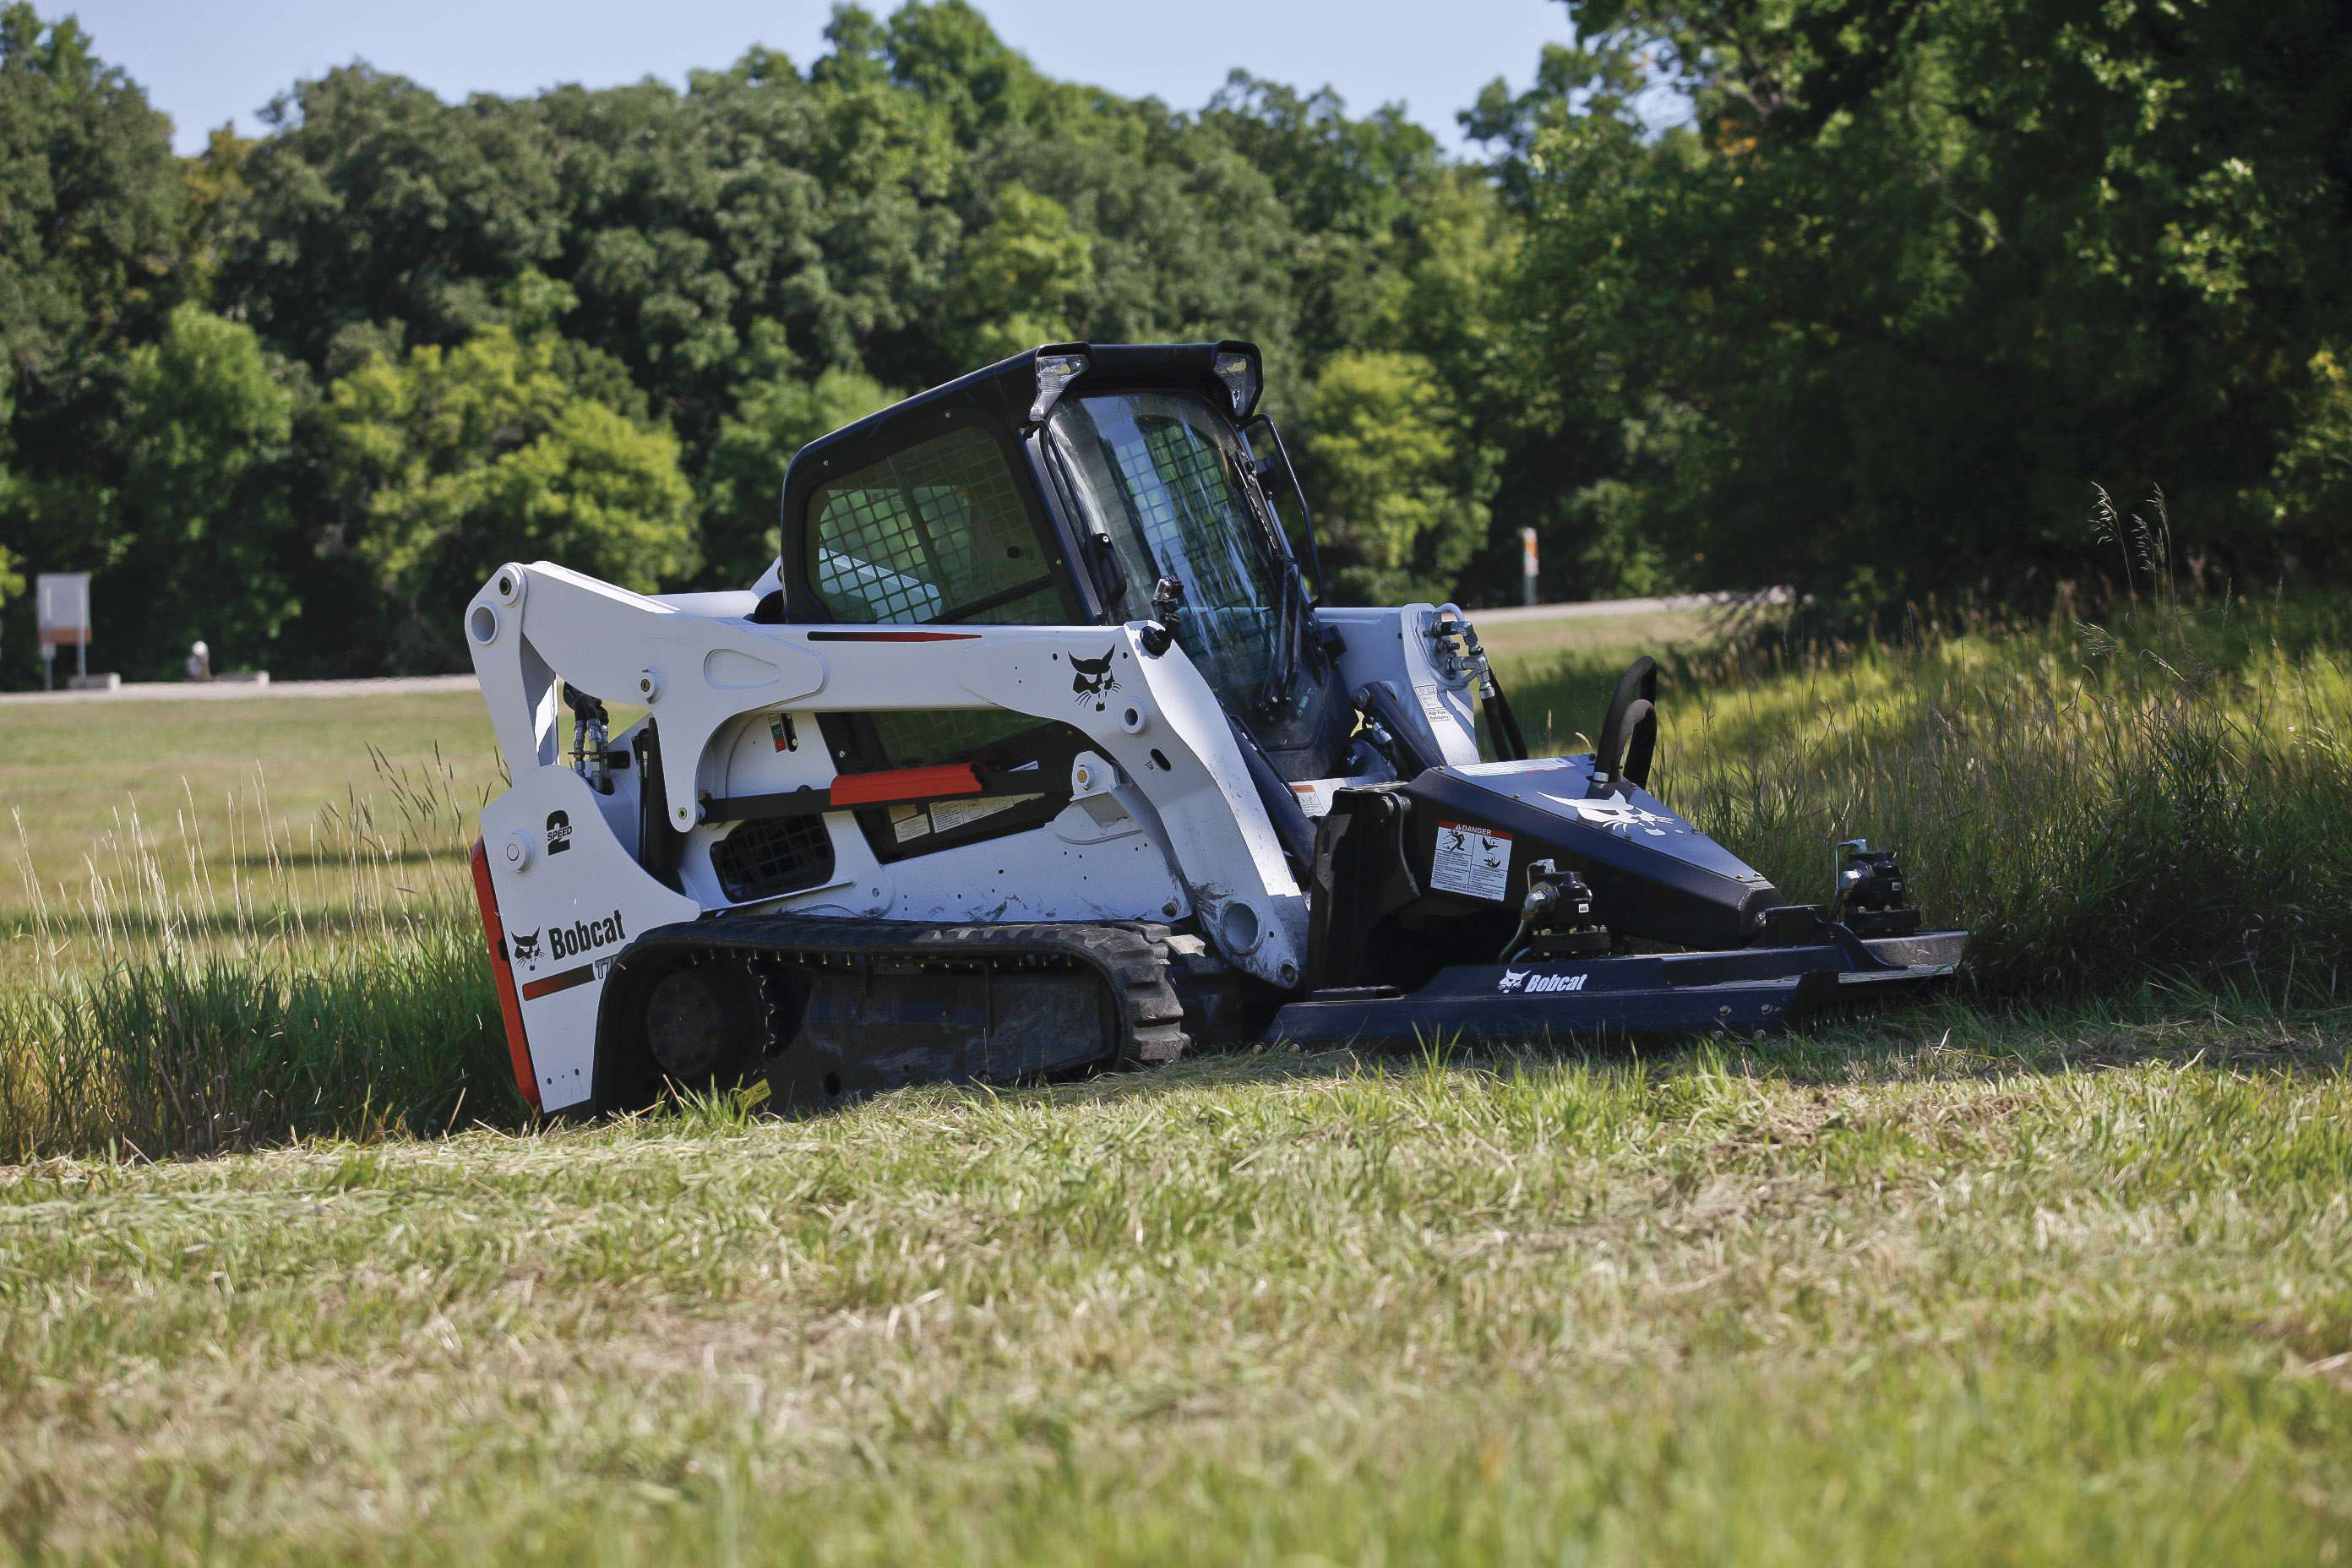 Bobcat S Brushcat Rotary Cutter Designed To Tackle Tough